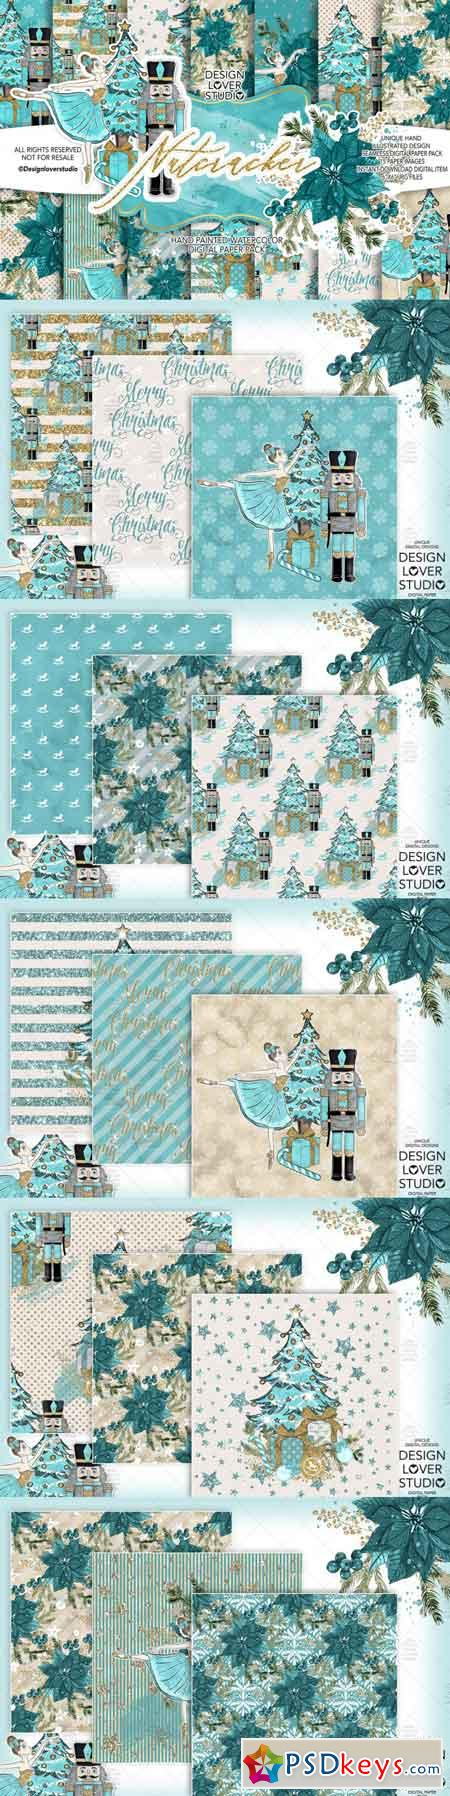 Nutcracker digital paper pack 3502532